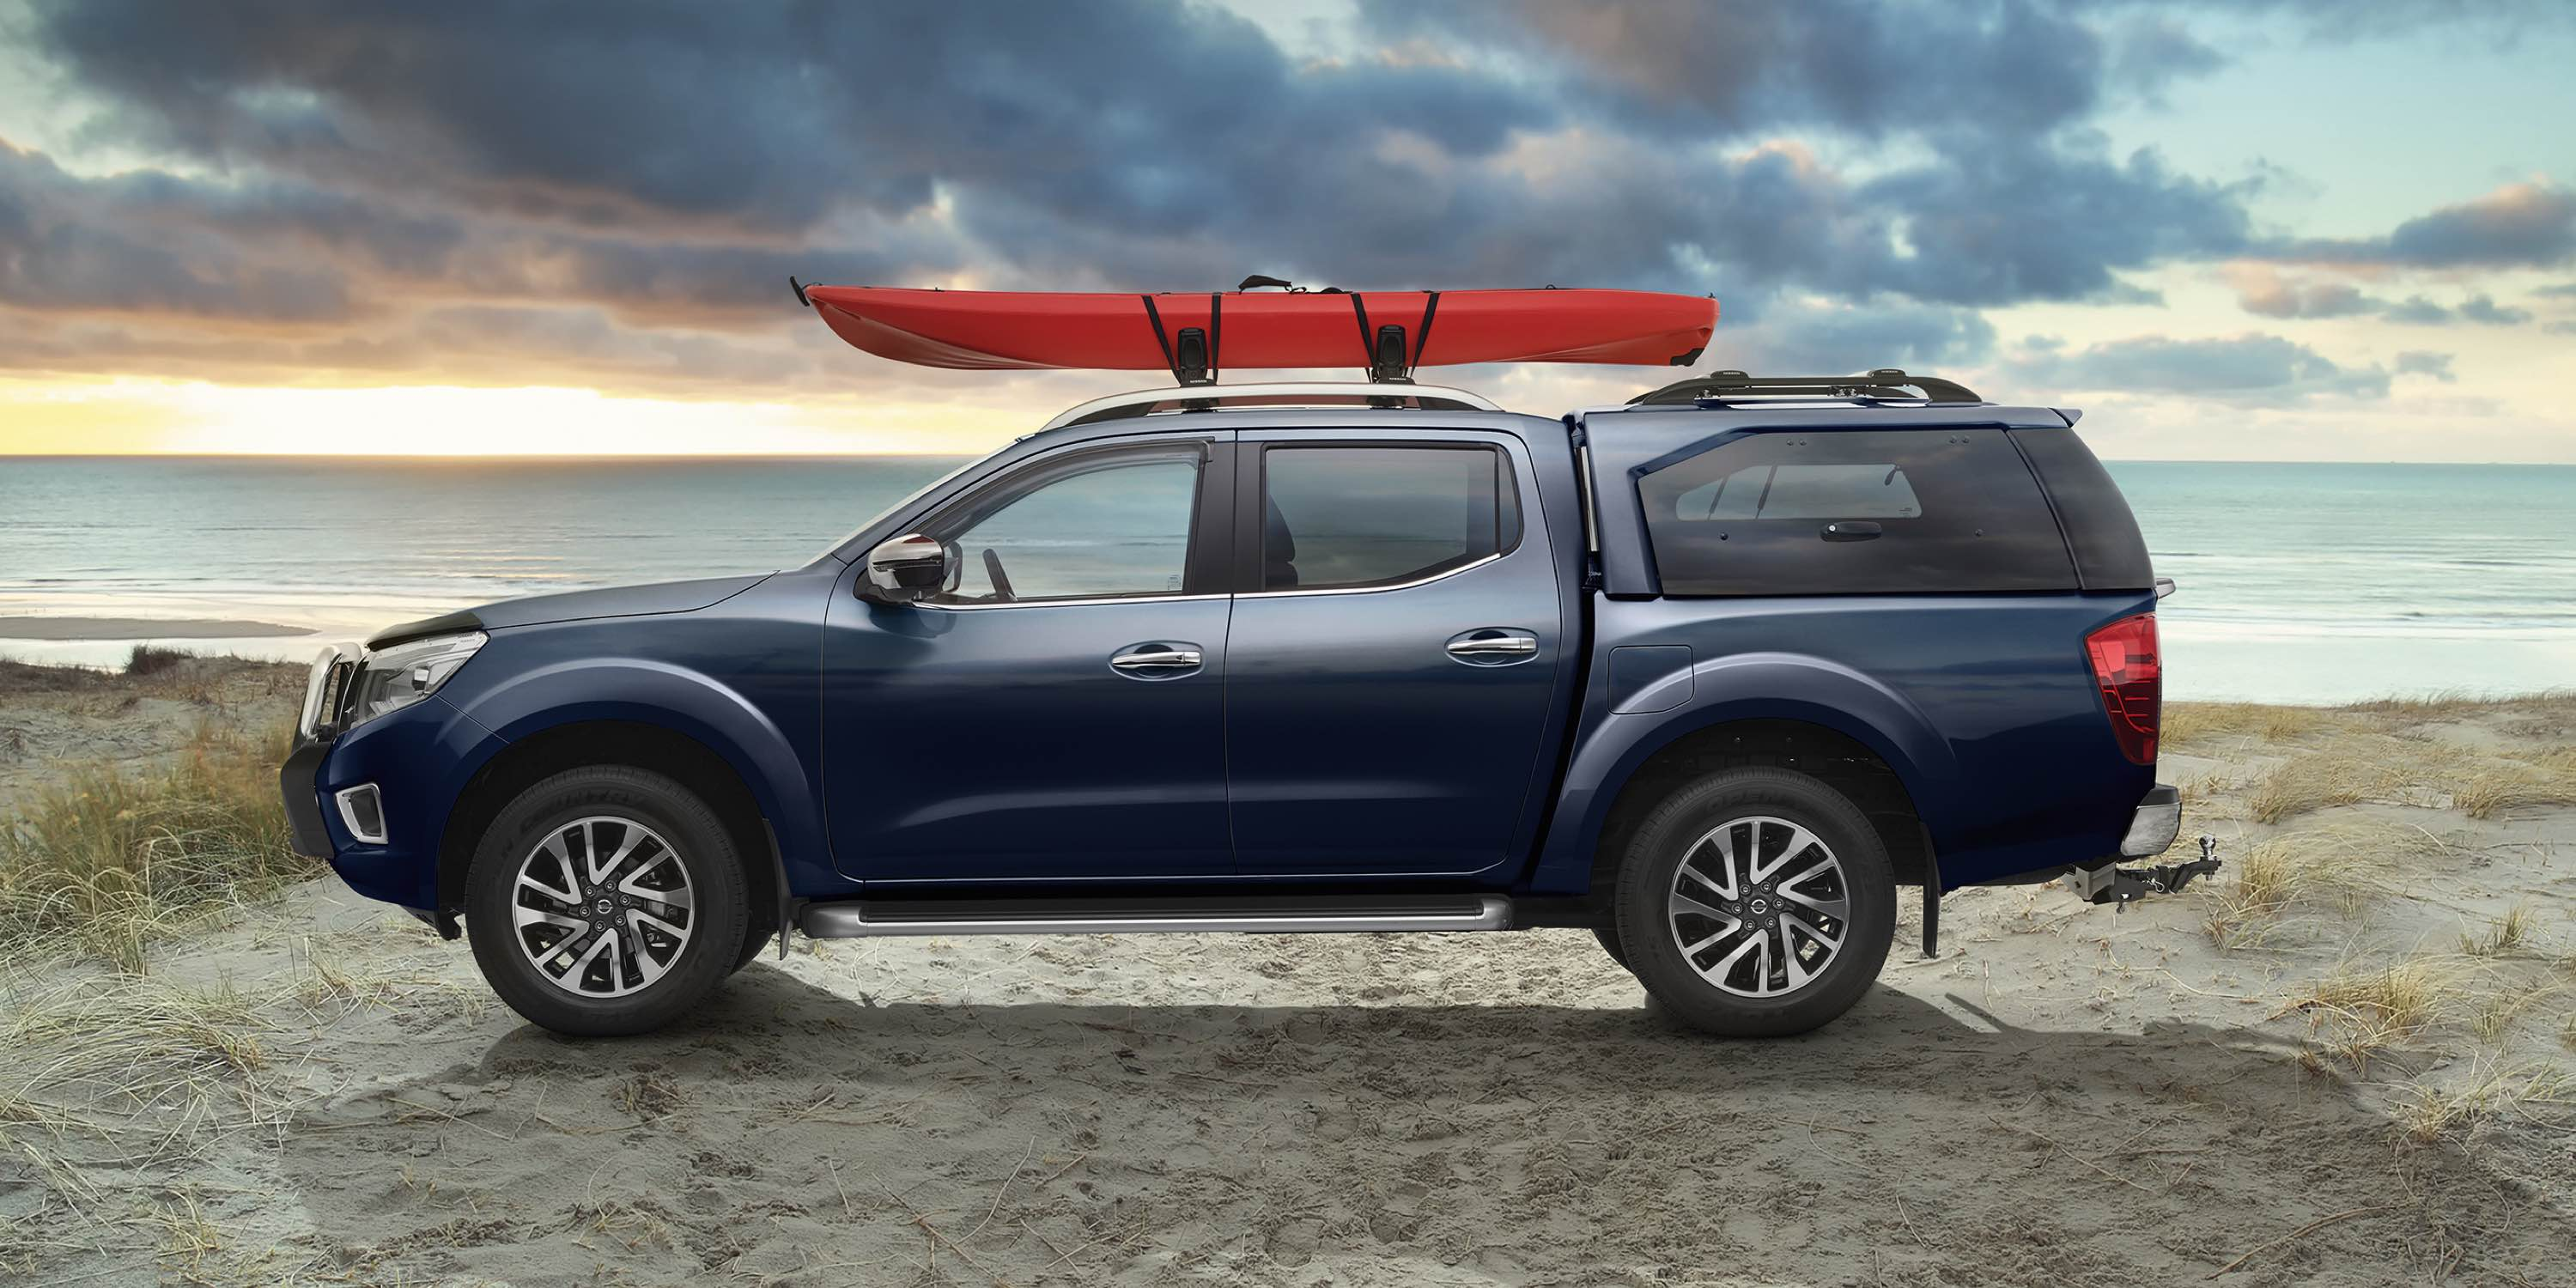 Nissan Navara Ute Accessories Nissan New Zealand